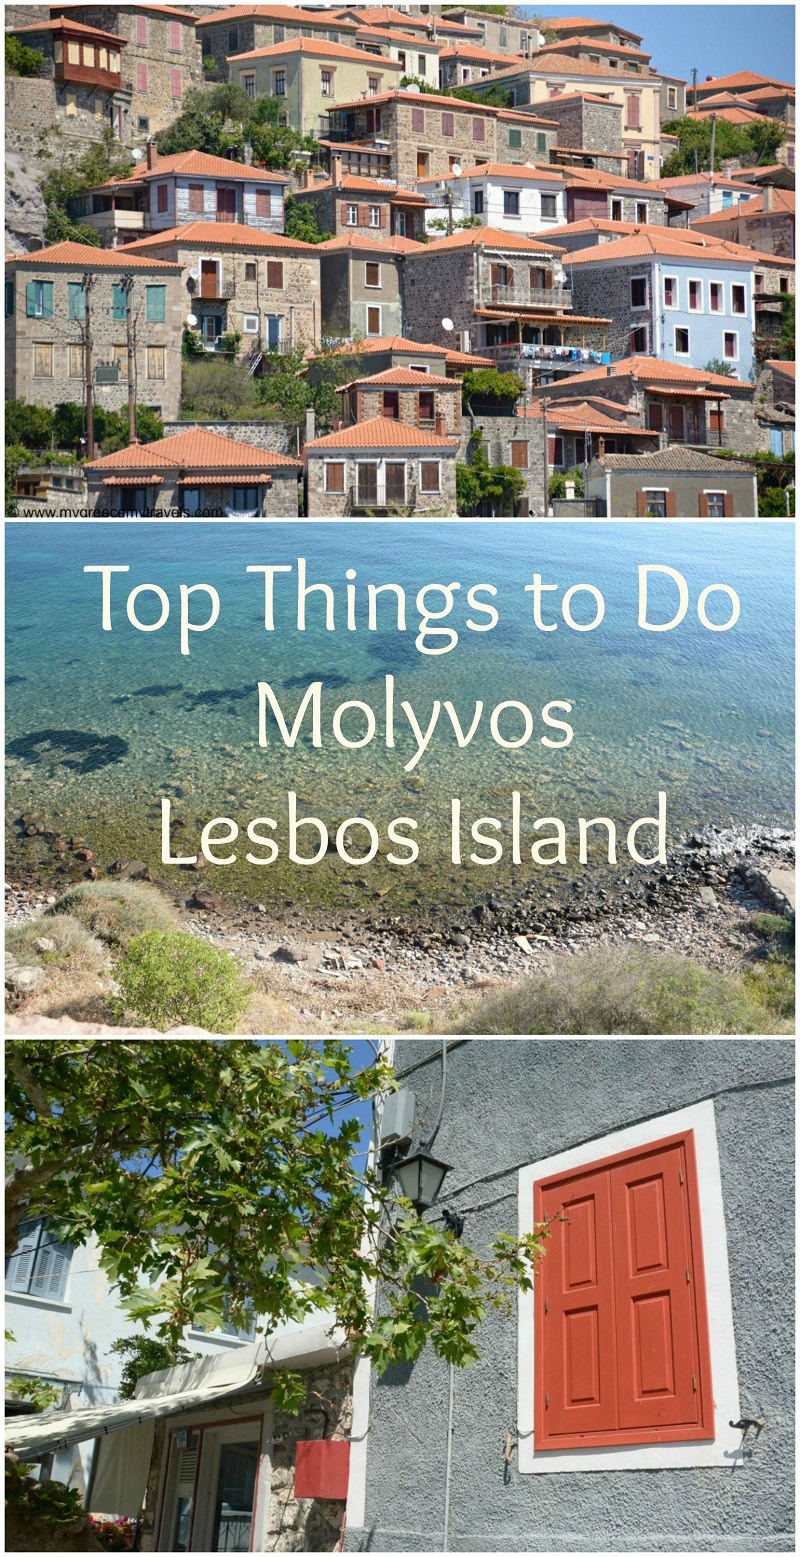 top-things-to-do-in-molyvos-lesbos-island-mygreecemytravels-com